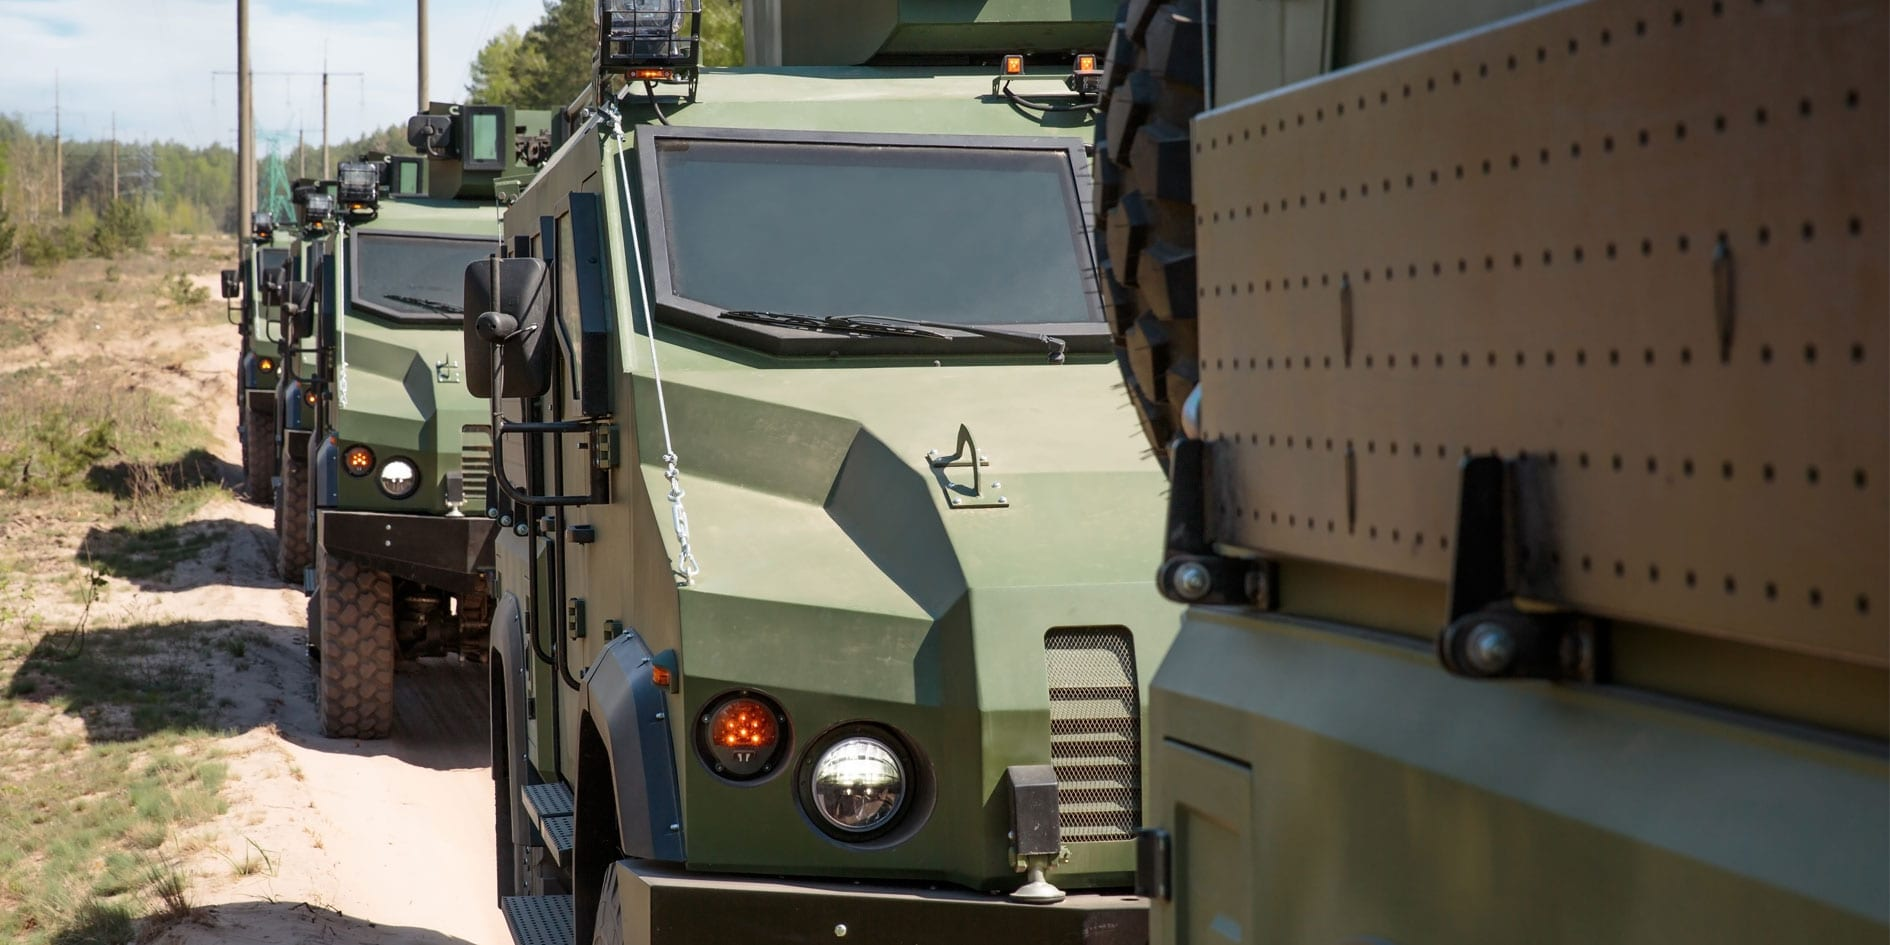 paint for military vehicles